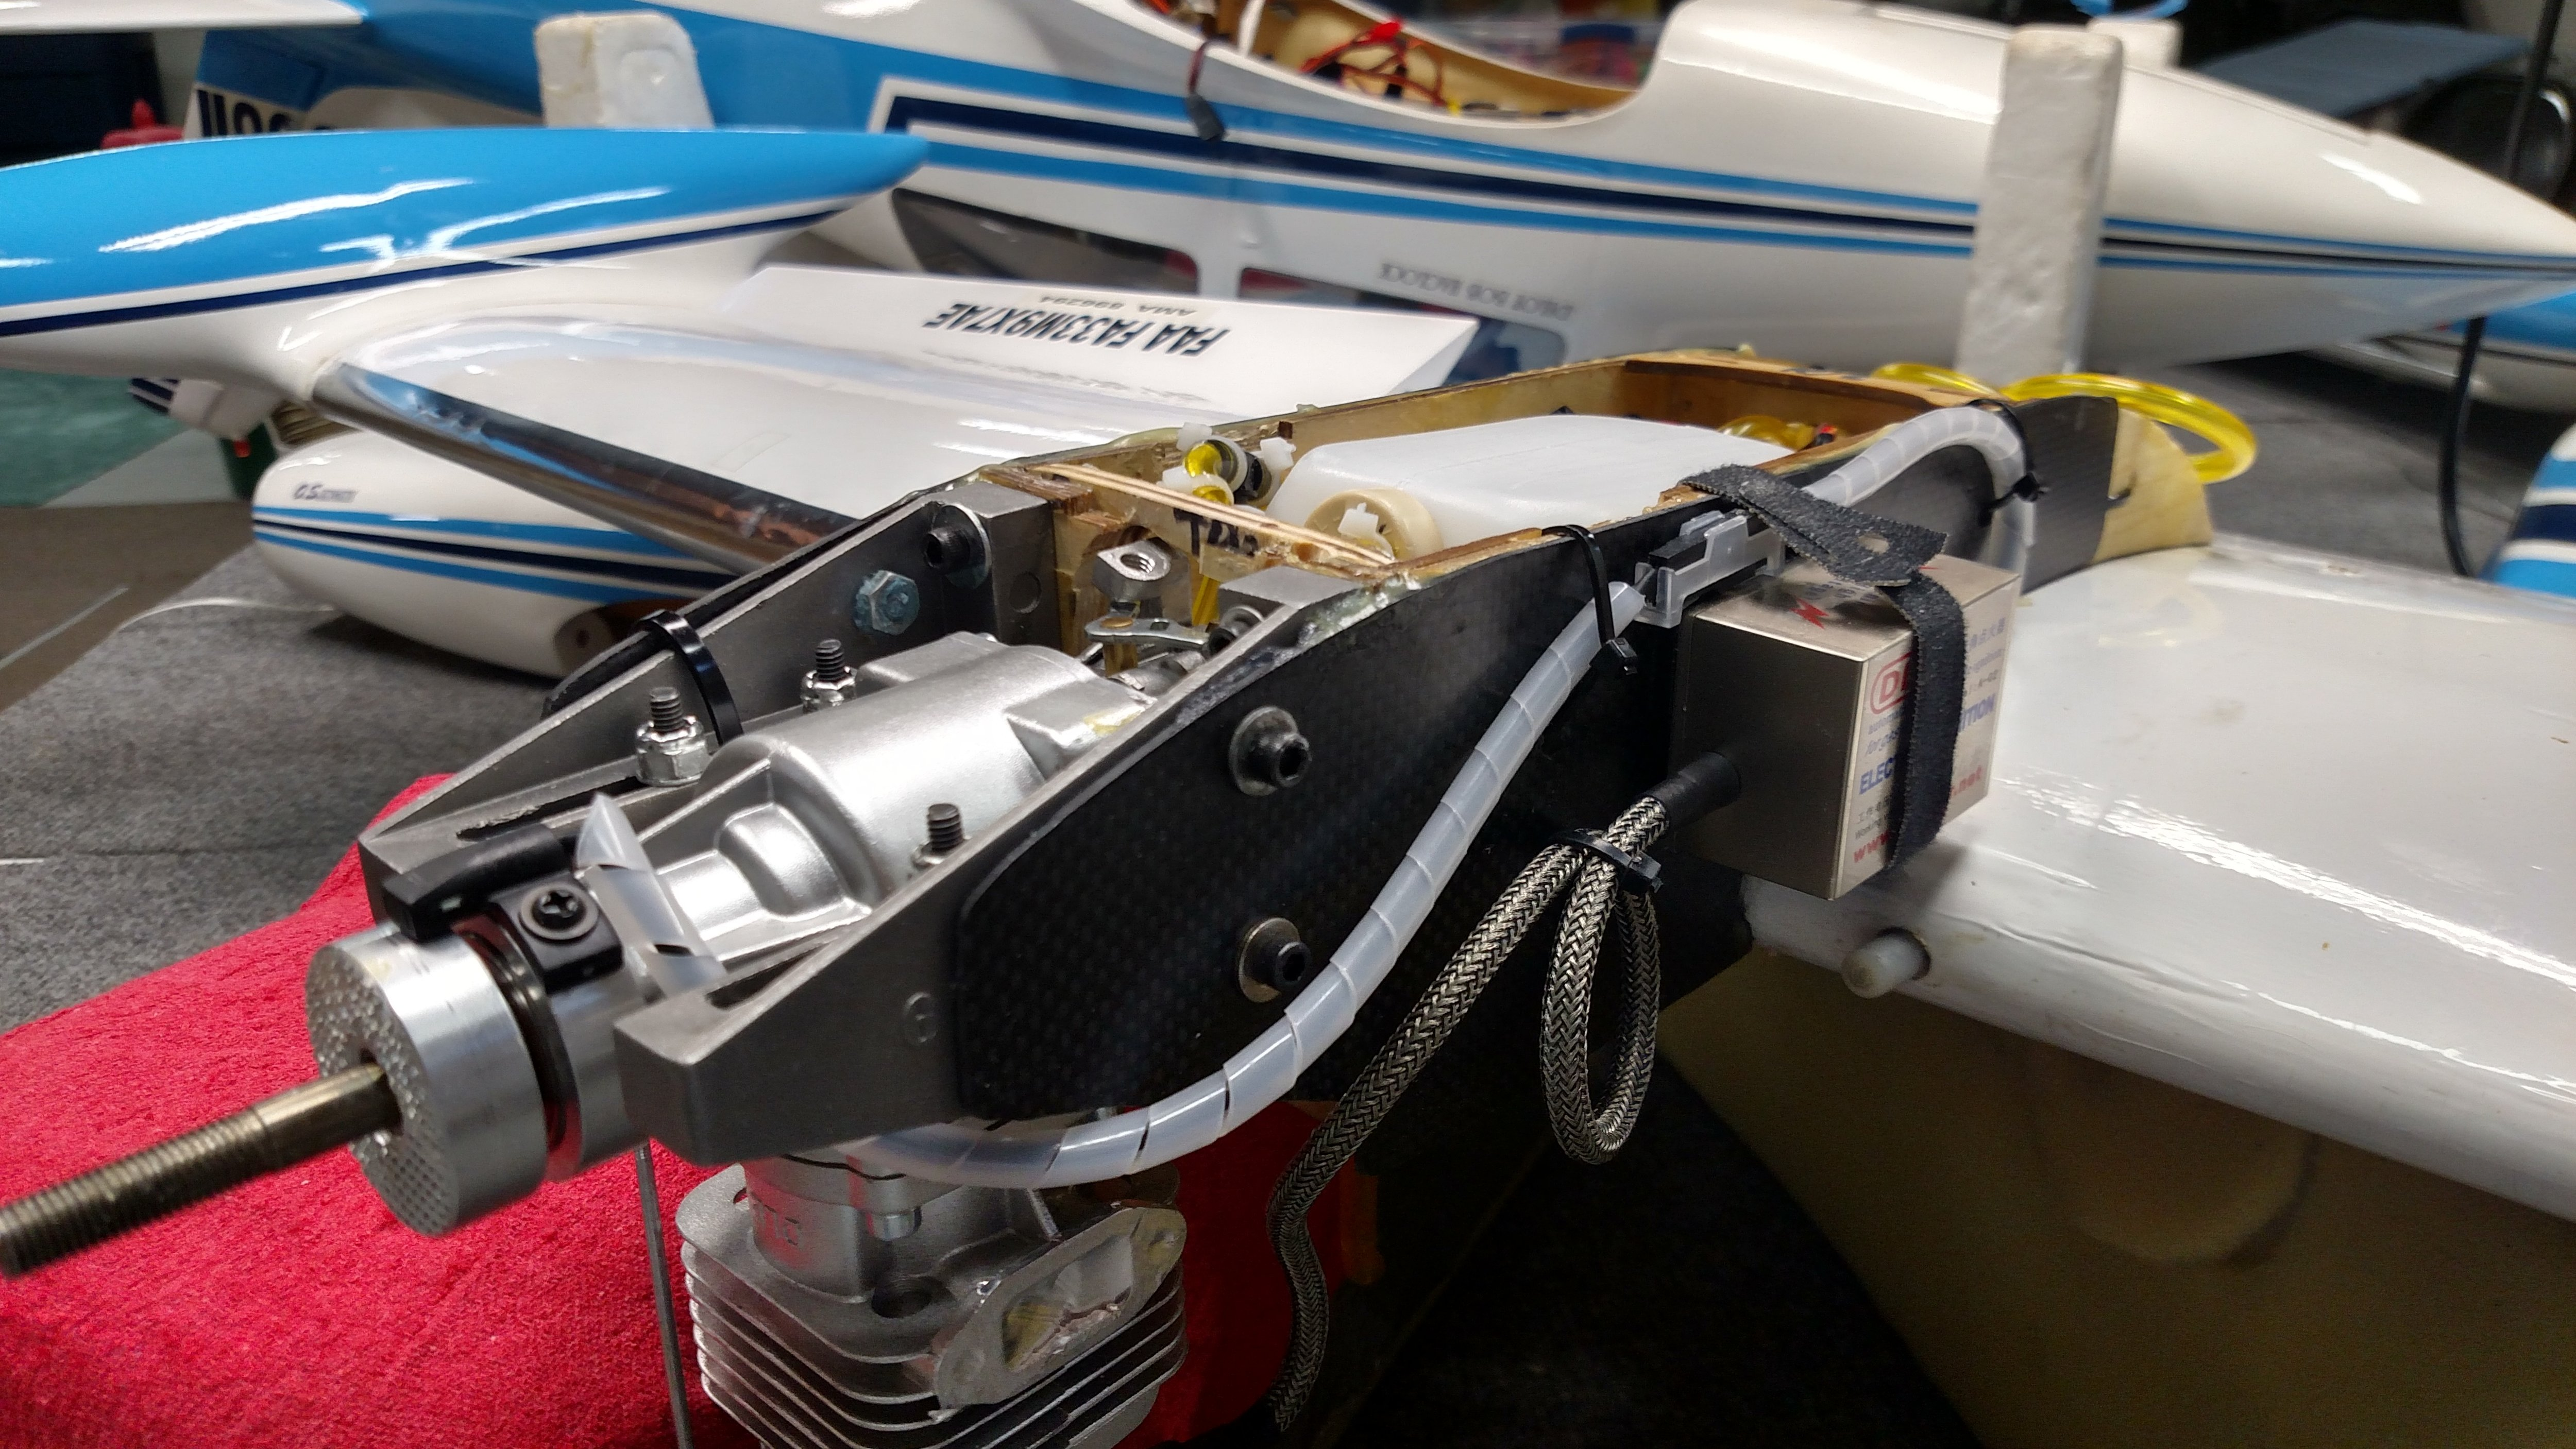 Click image for larger version  Name:cessna nacelle 2.jpg Views:34 Size:1.72 MB ID:2258623